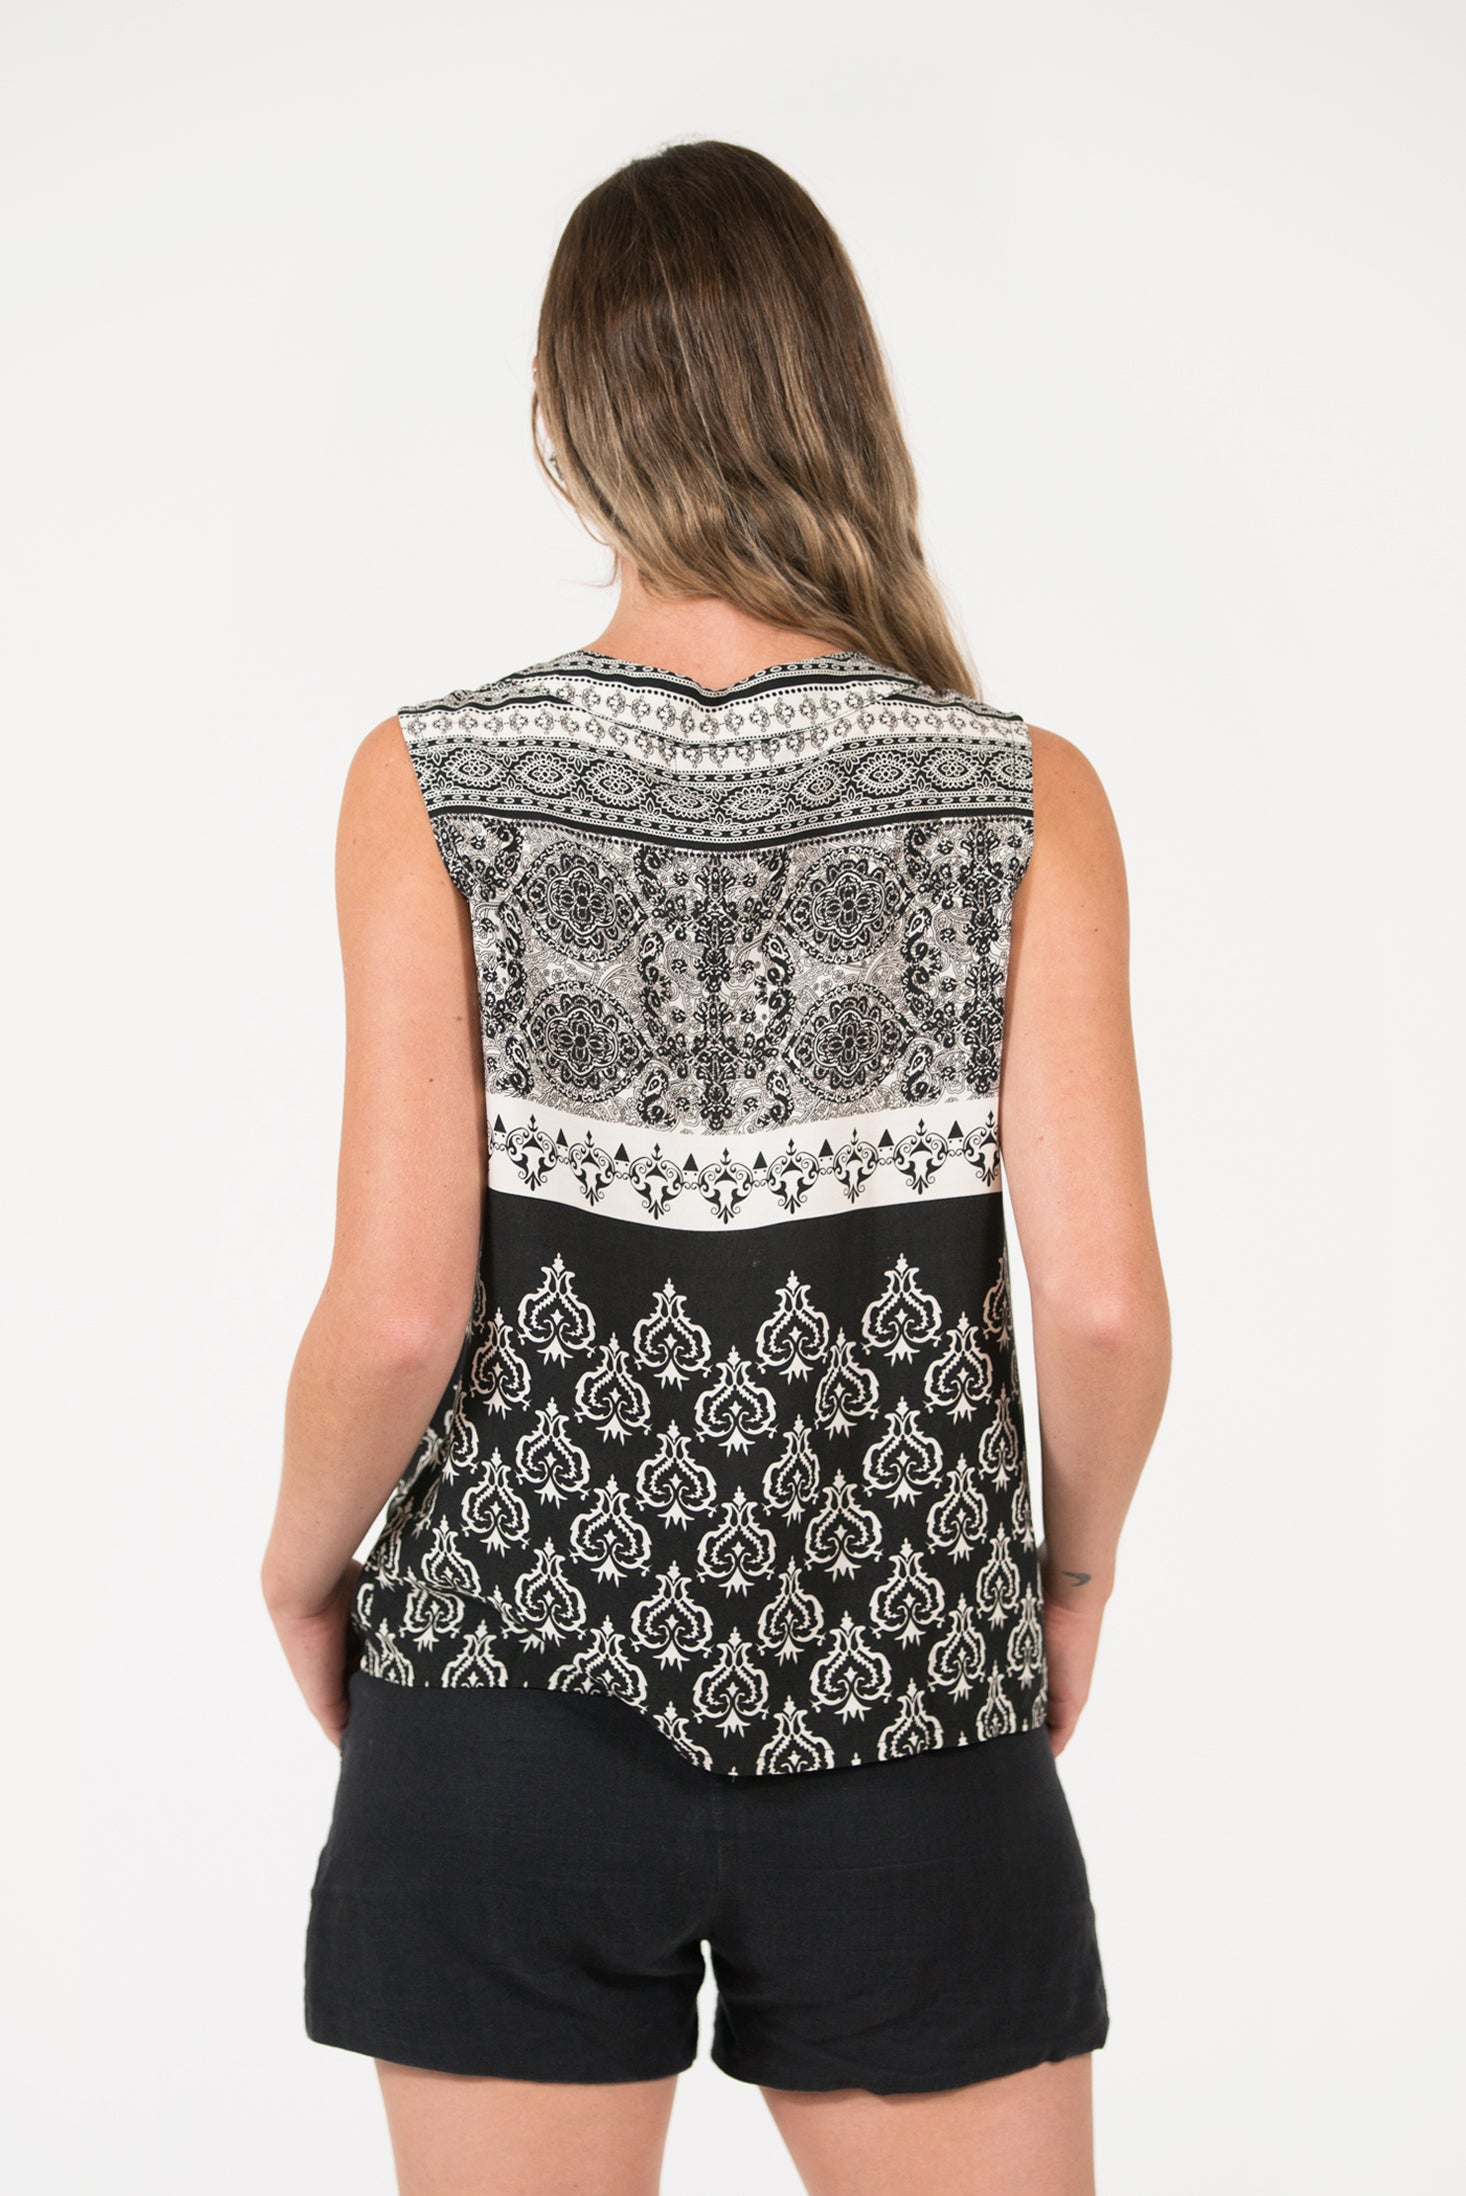 Black Heart printed sleeveless Bowline top with tie at neck